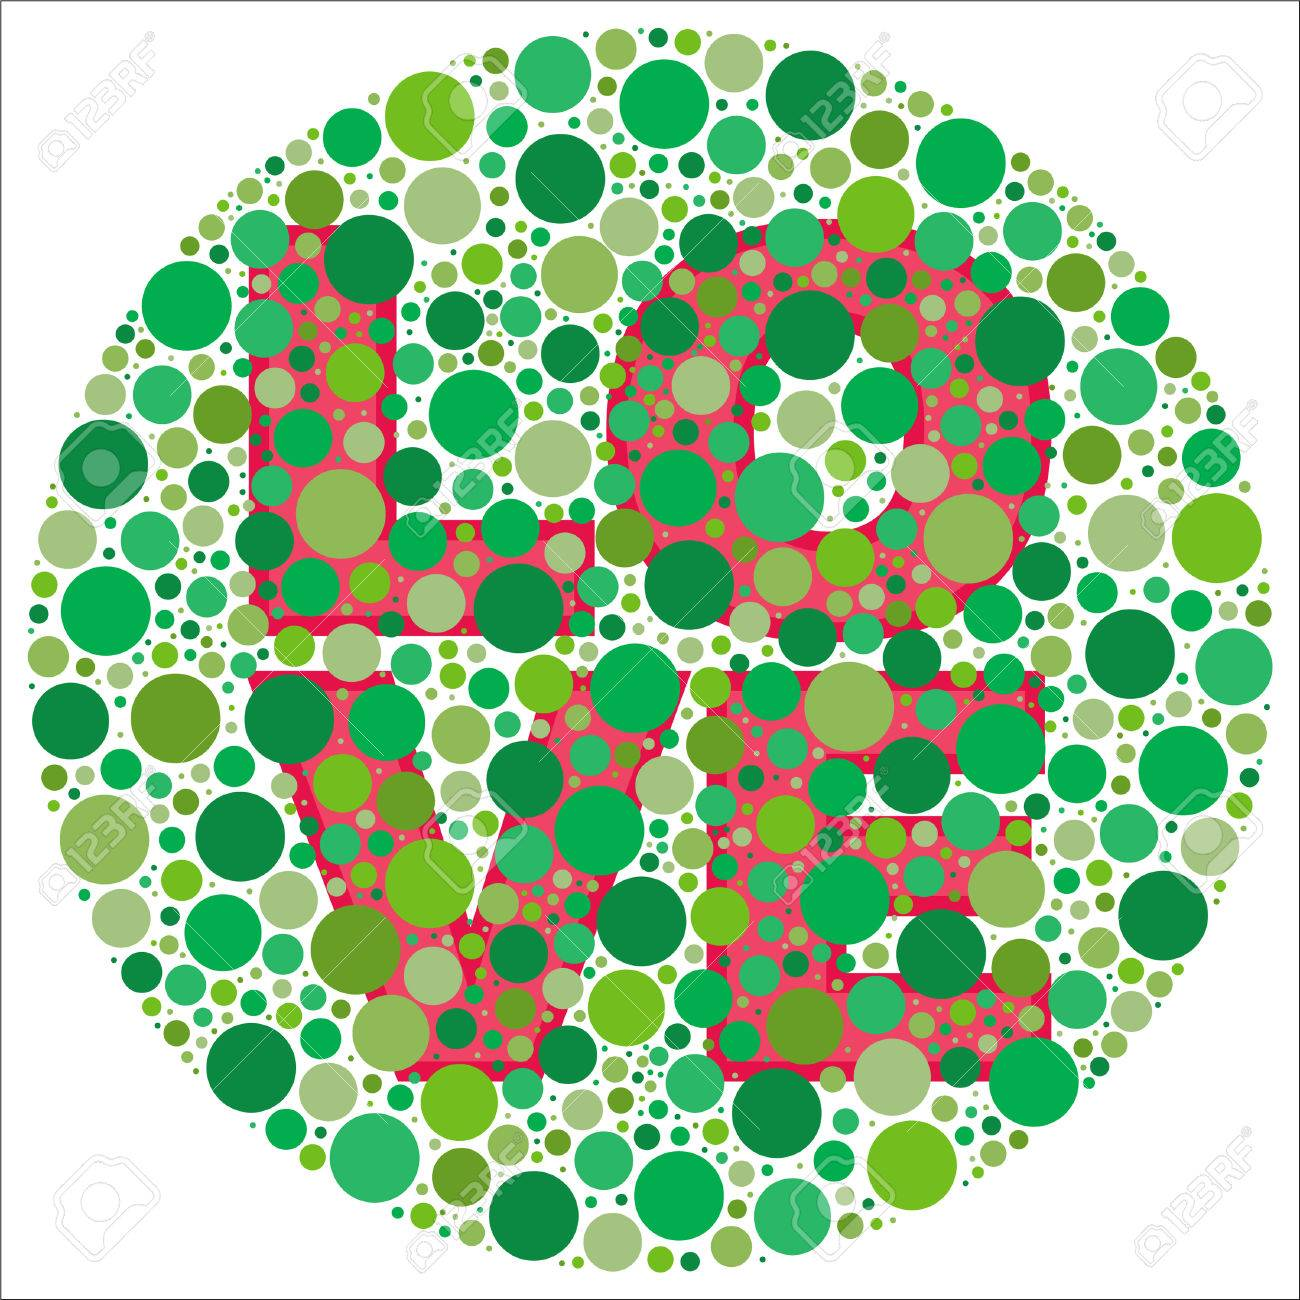 Inspired By Colour Blind Tests, The Word LOVE Is Behind Green ...